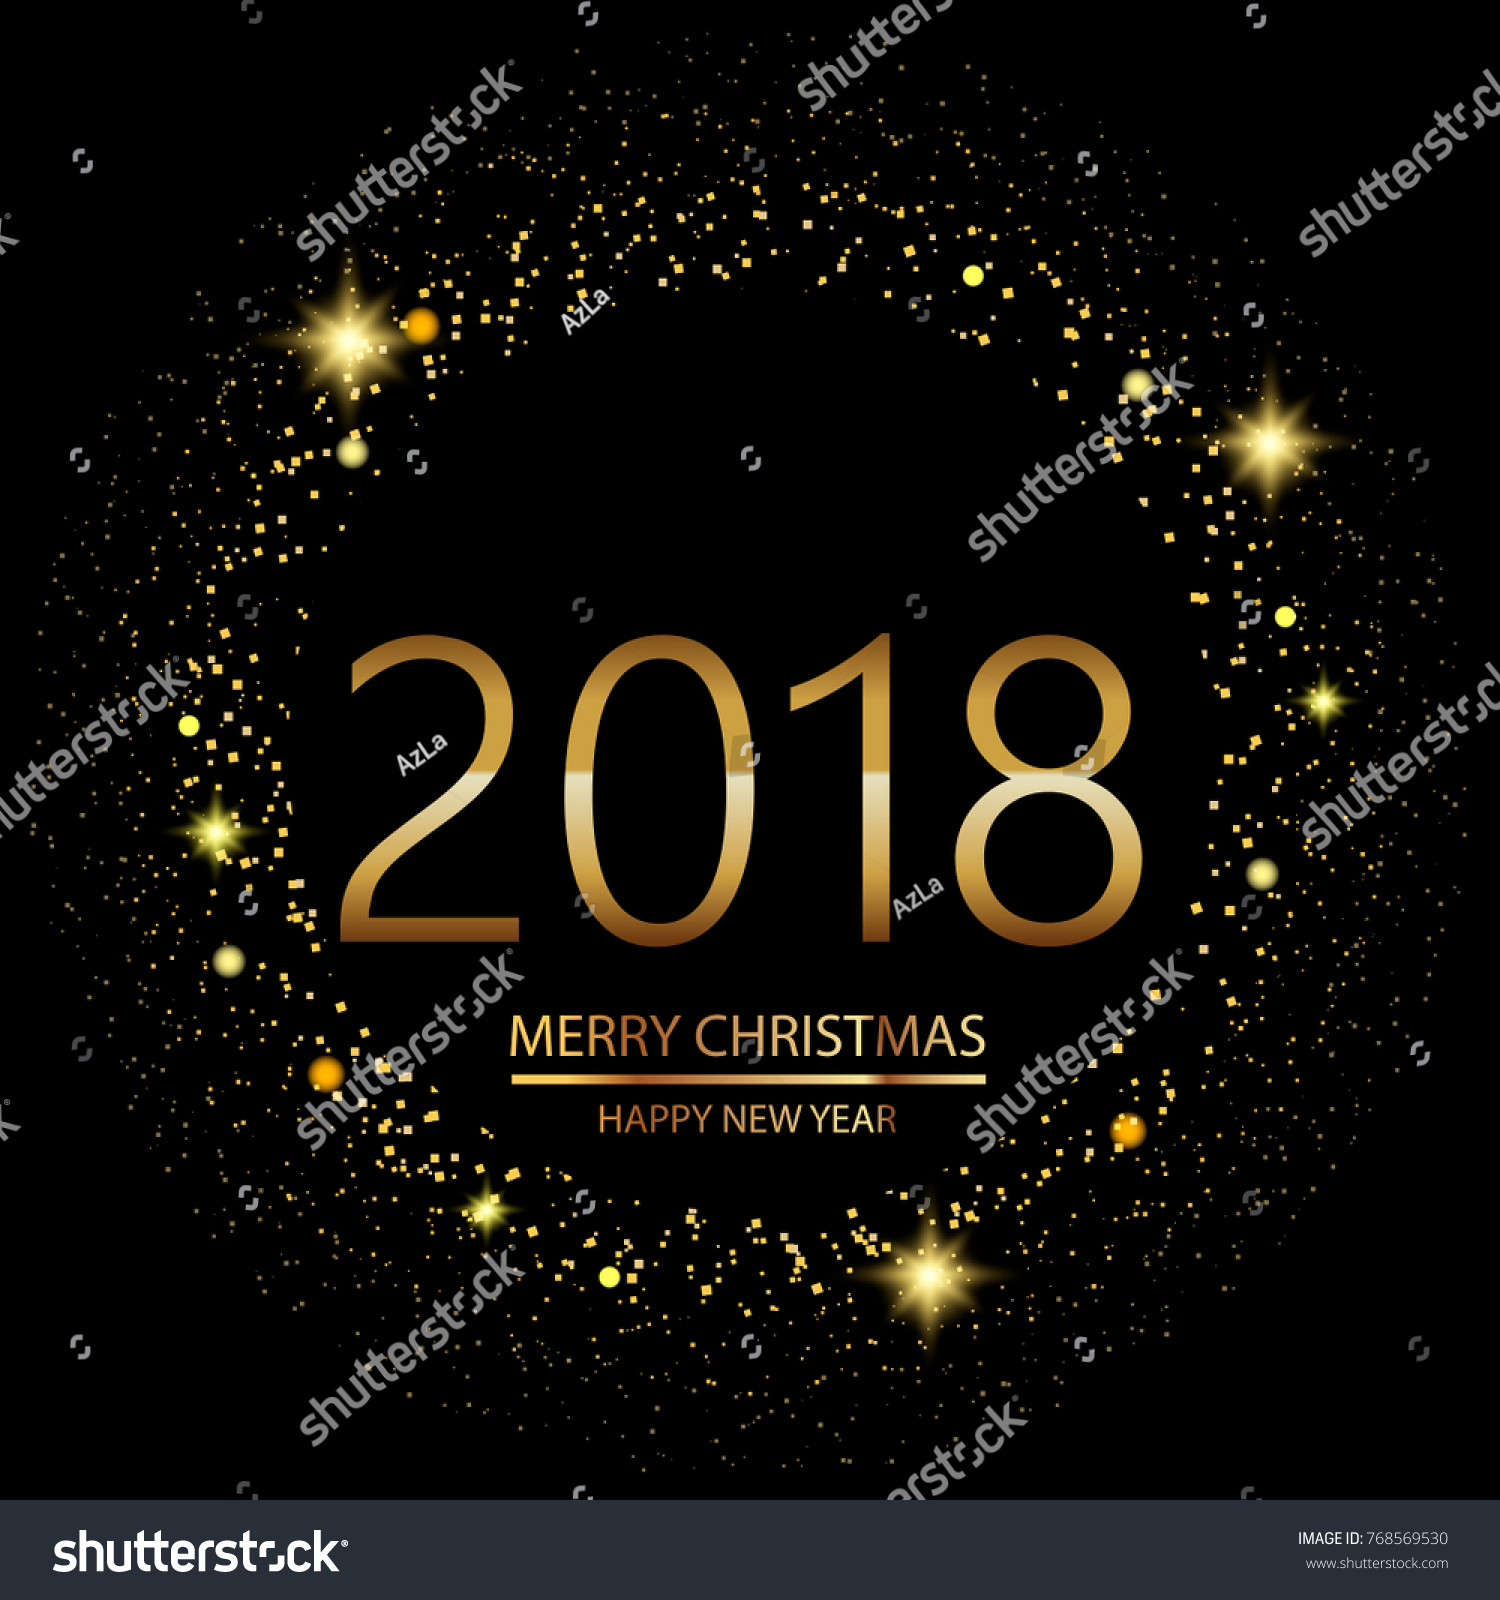 happy new year background with glowing lights text on black background vector